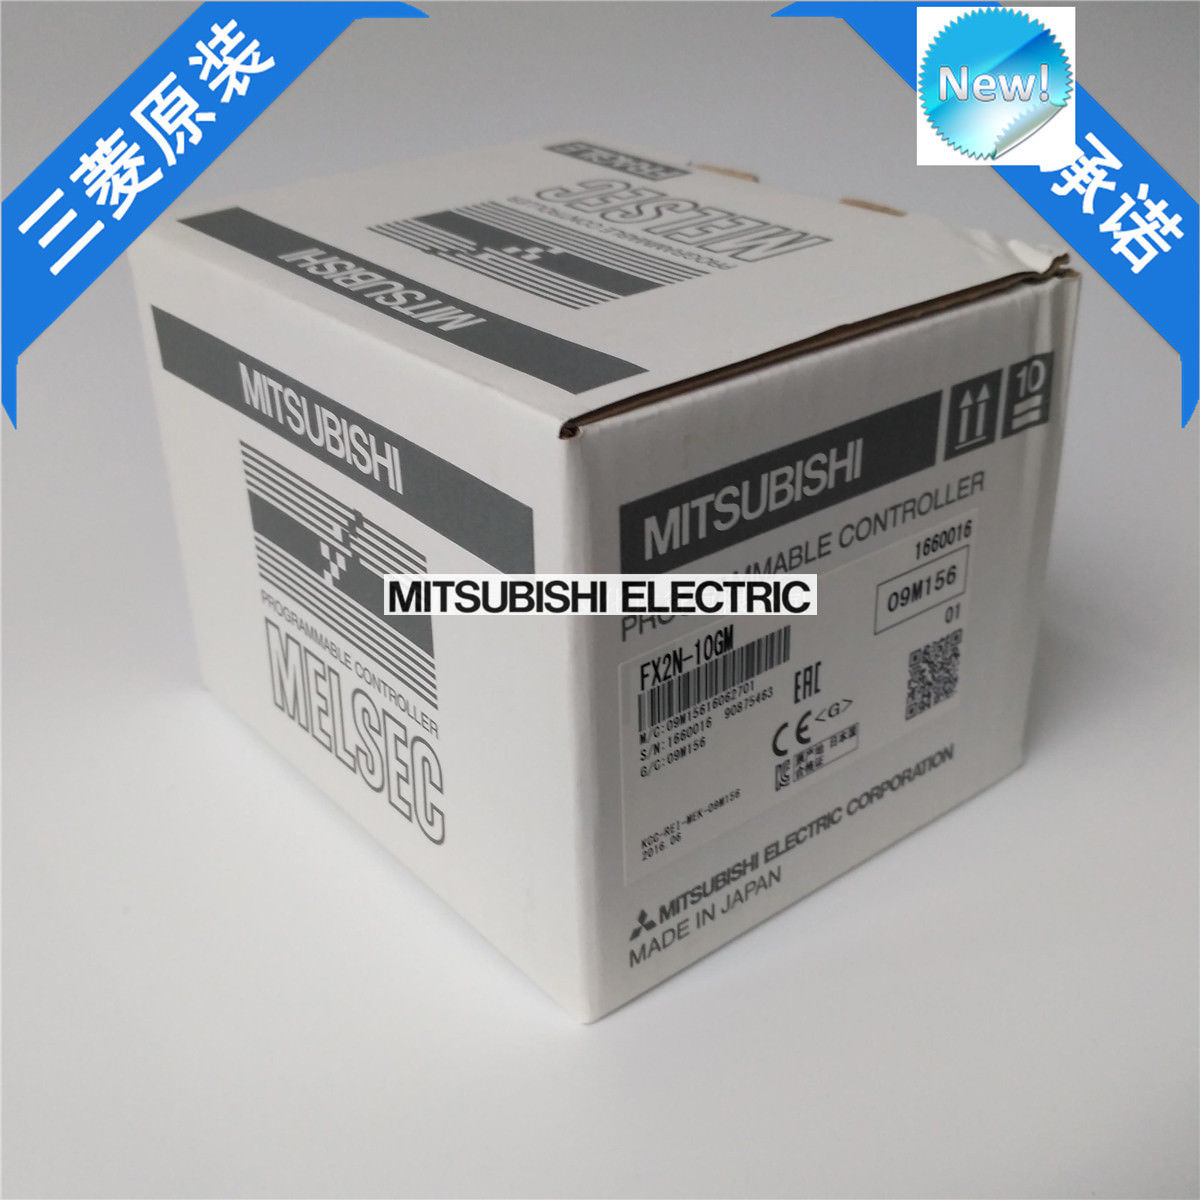 100% New Mitsubishi PLC FX2N-10GM In Box FX2N10GM